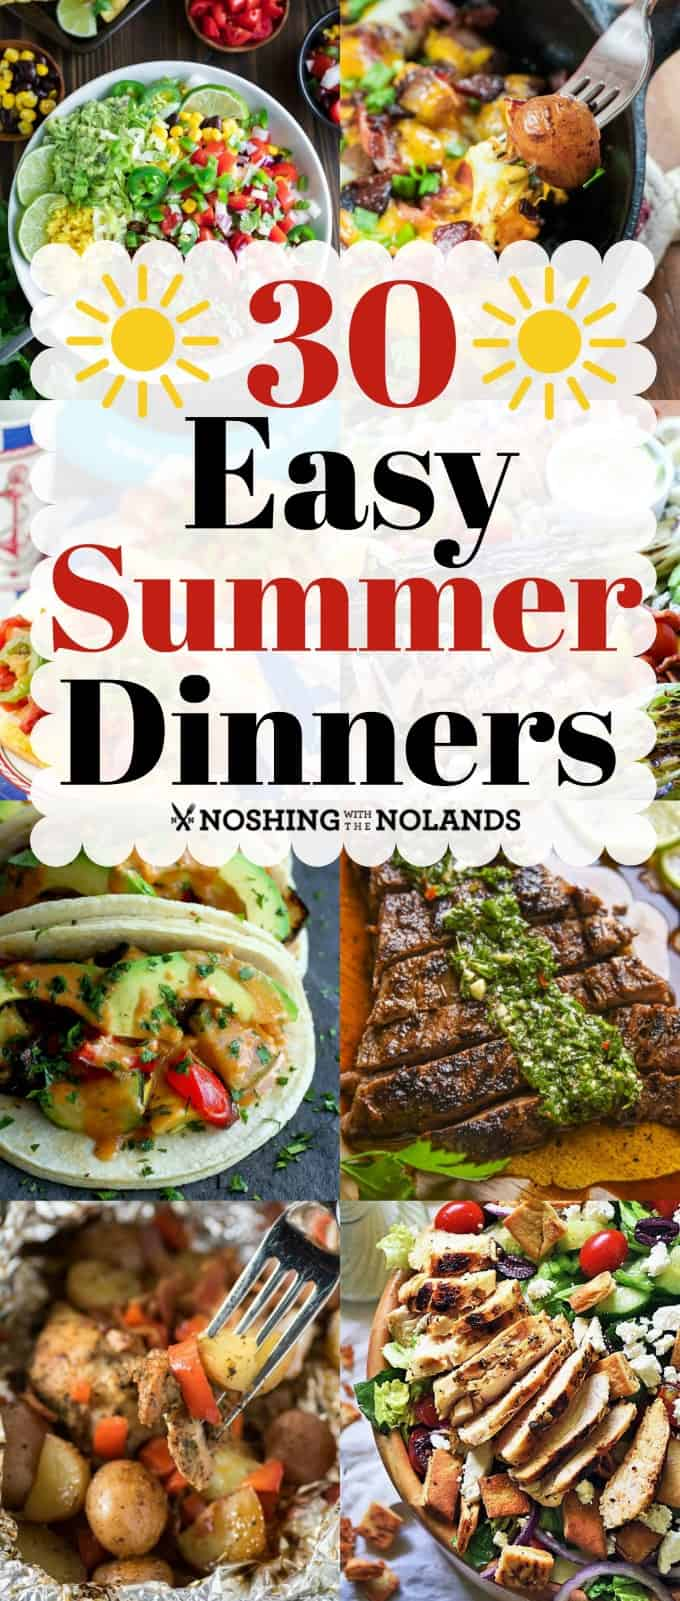 30 Easy Summer Dinners will help you get dinner on the table in a jiffy but not compromising flavor!! Your family will love you for these recipes!! #summer #easydinners